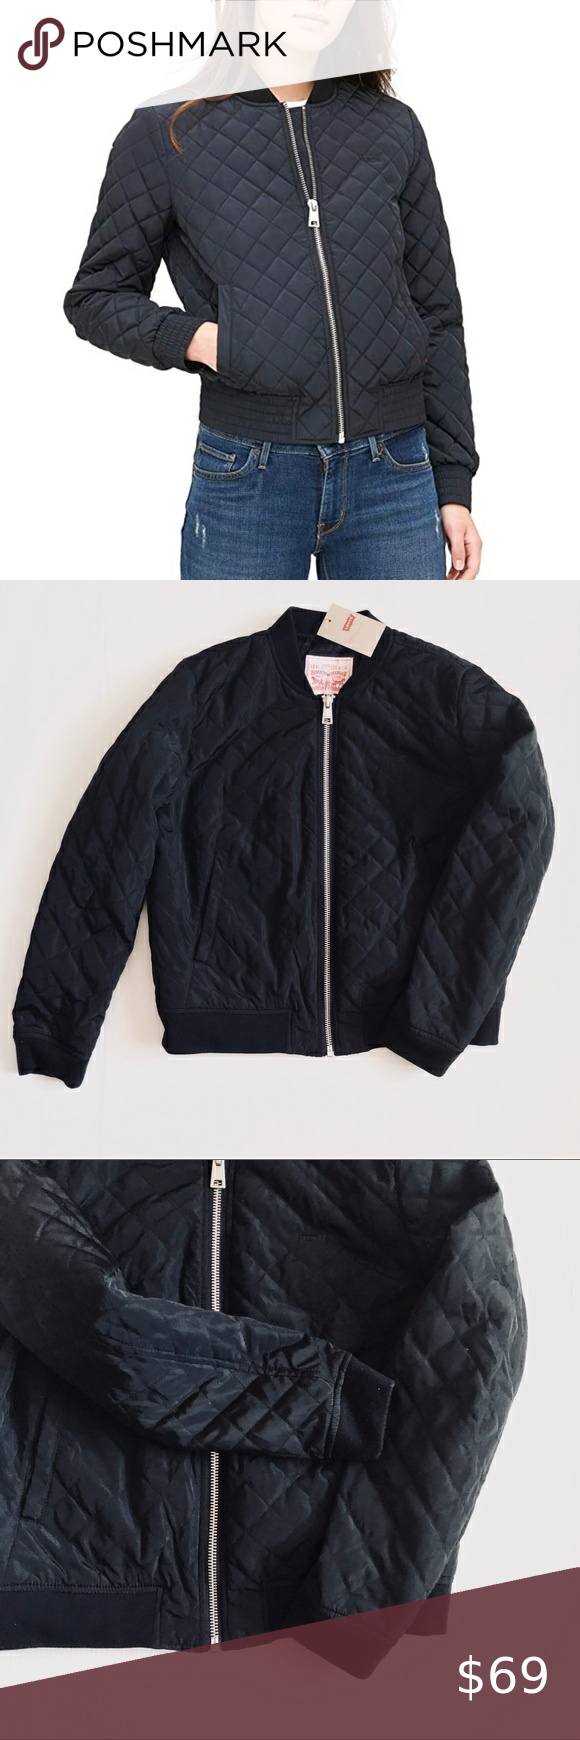 Levi S Diamond Quilted Bomber Jacket Black Large New With Tag Detached Color Black Size Large 100 Quilted Bomber Jacket Black Bomber Jacket Quilted Bomber [ 1740 x 580 Pixel ]